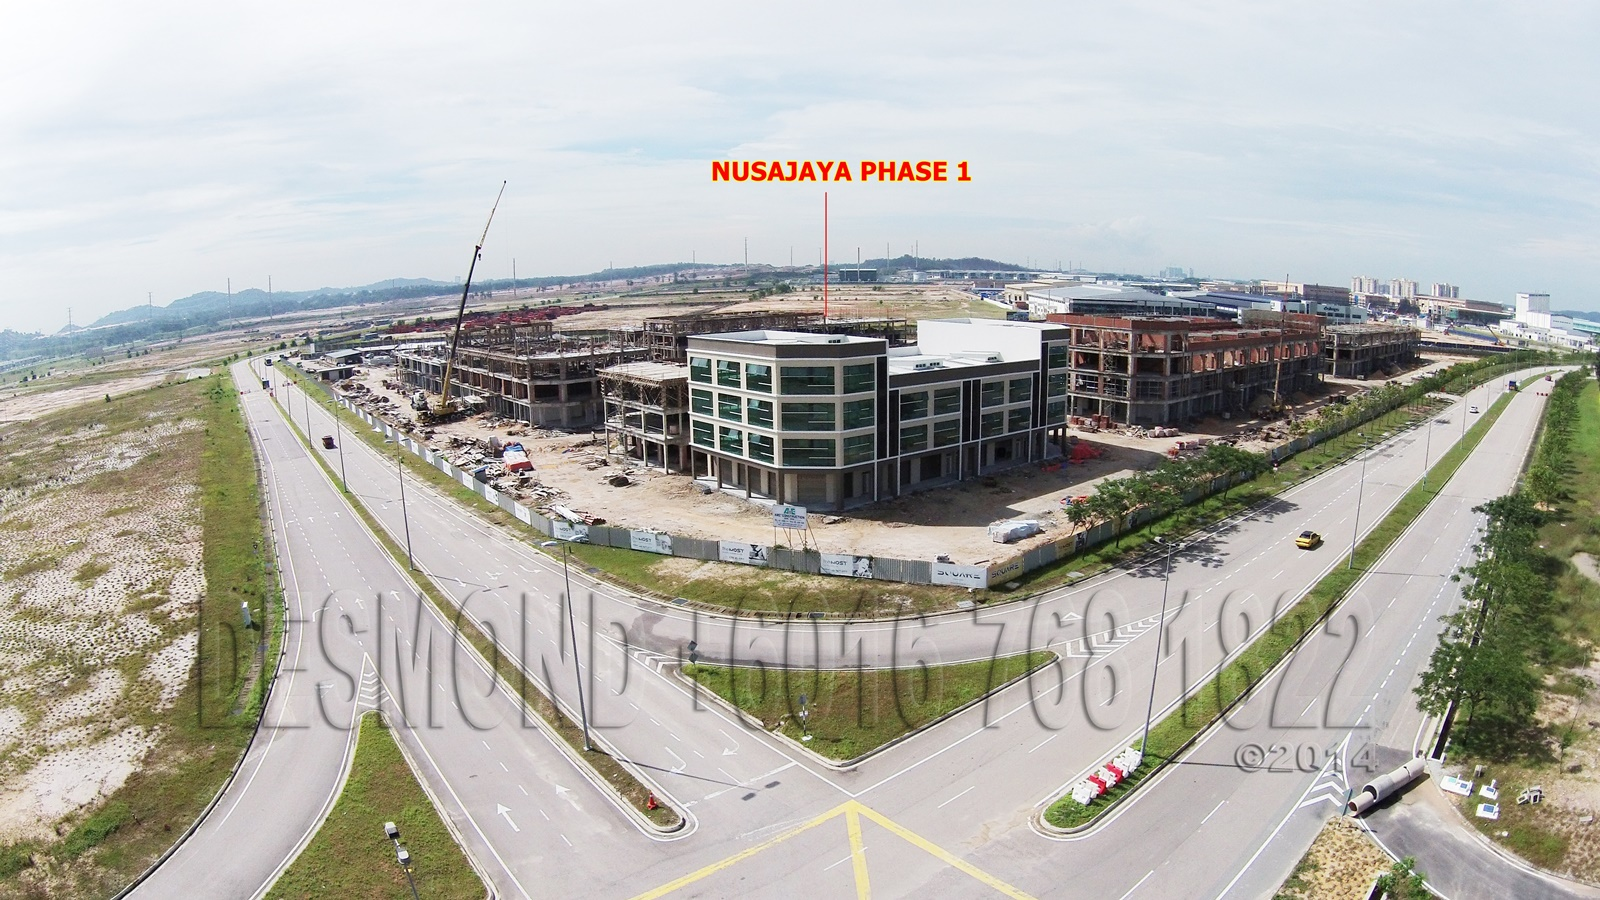 Nusajaya Square Phase 1 Ariel View 02